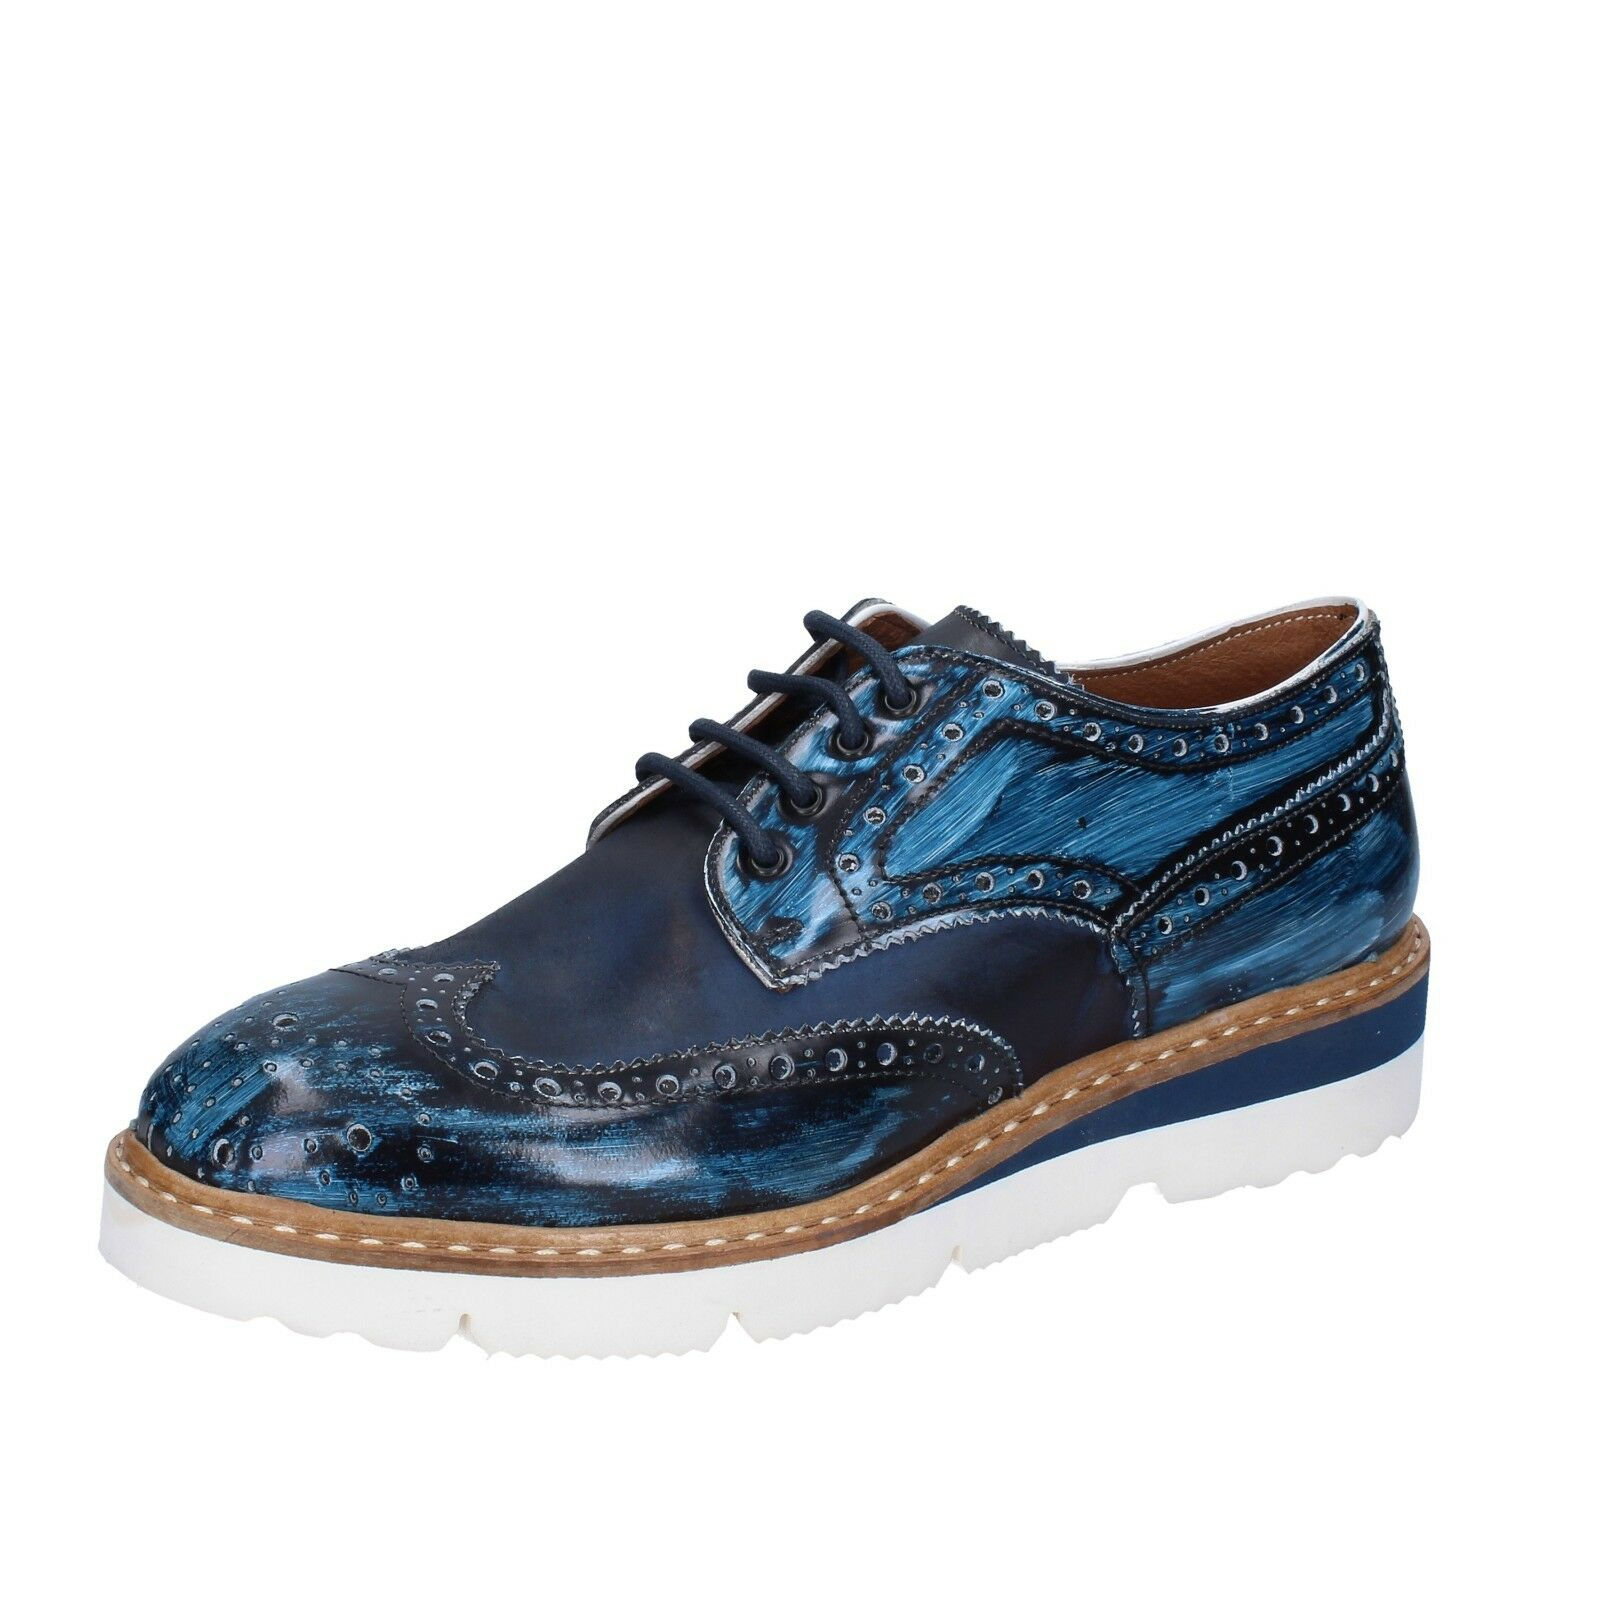 Men's shoes +2 MADE IN ITALY 6 () elegant bluee leather BT698-39